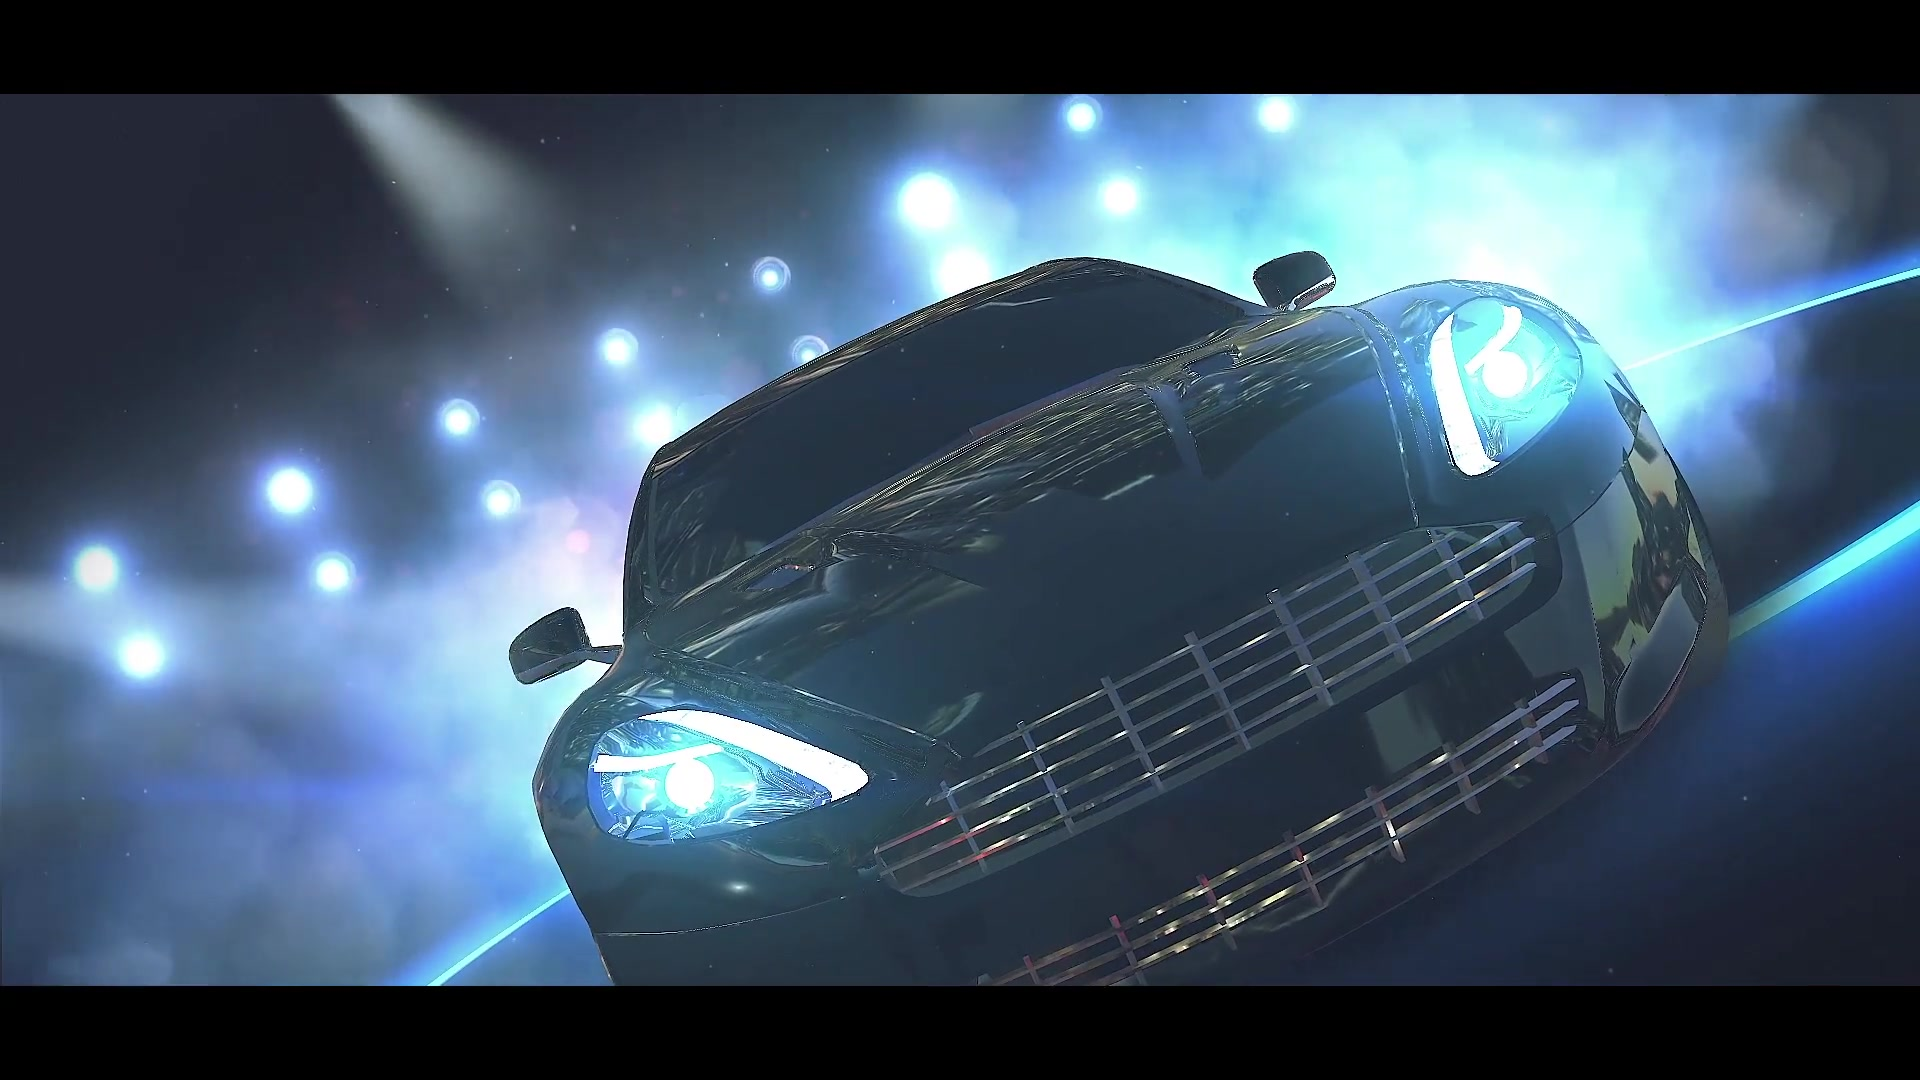 Dynamic Car Intro Videohive 29149720 After Effects Image 5